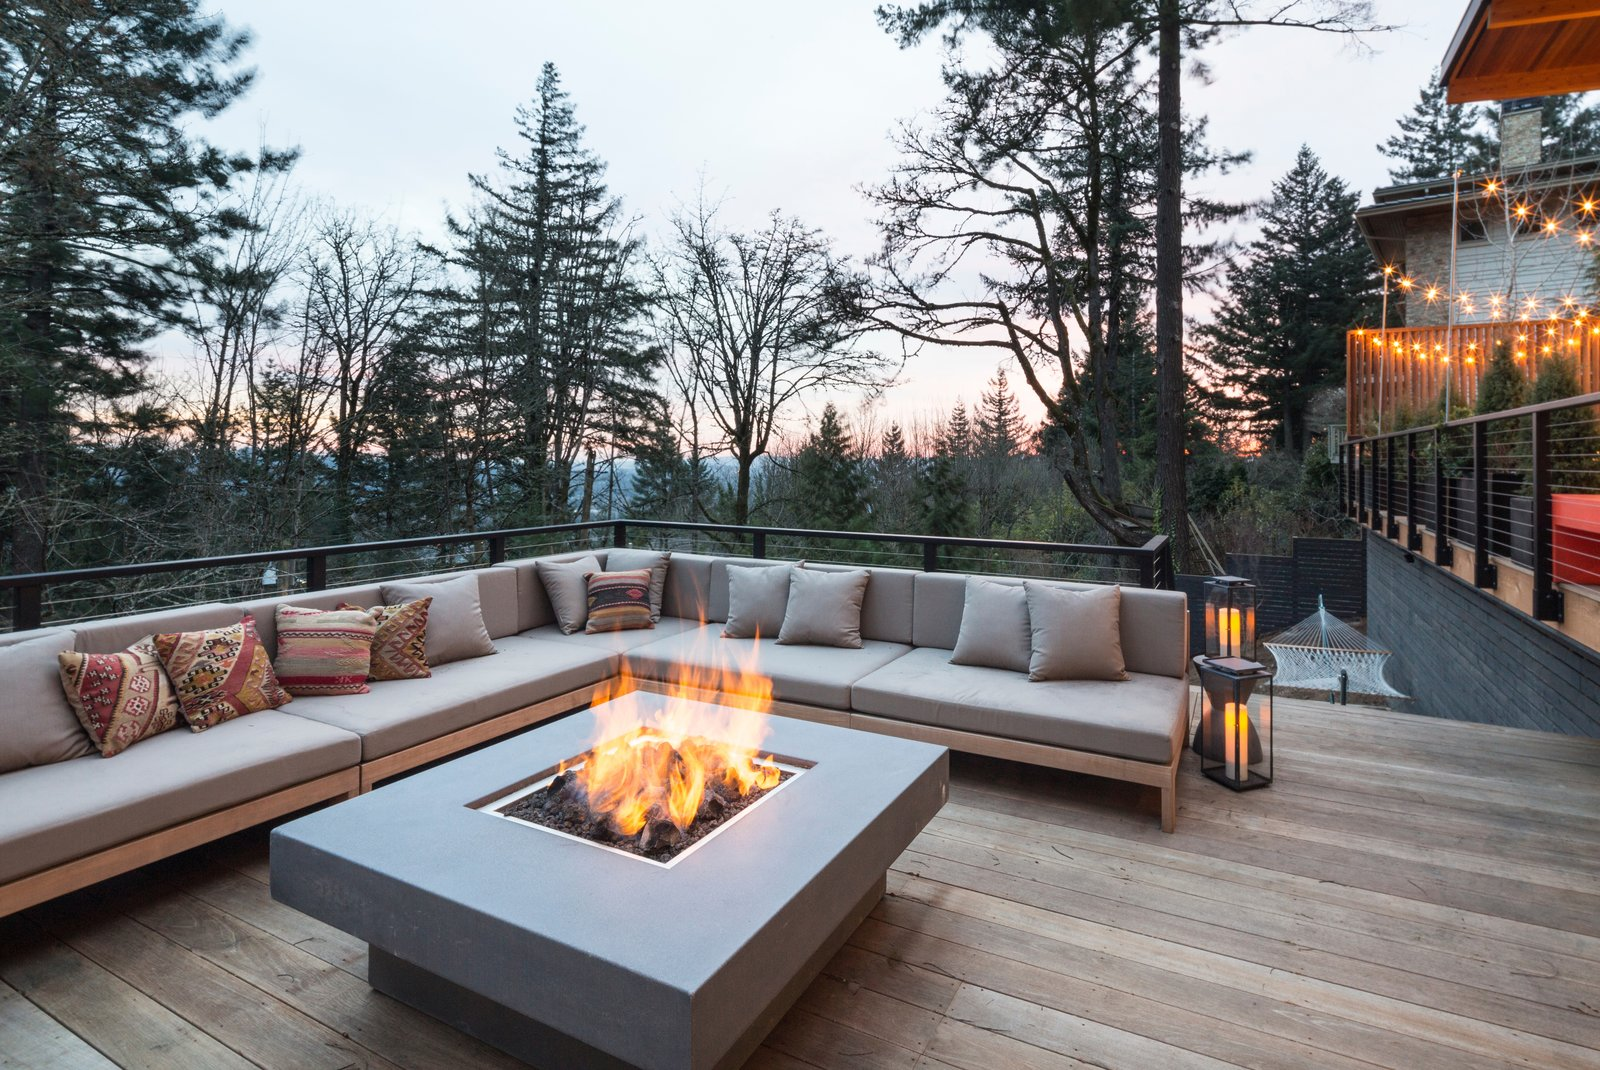 Outdoor, Hardscapes, Horizontal Fences, Wall, Wood Patio, Porch, Deck, Raised Planters, Large Patio, Porch, Deck, Trees, Decking Patio, Porch, Deck, Metal Fences, Wall, Hanging Lighting, Wood Fences, Wall, Back Yard, Landscape Lighting, and Wire Fences, Wall Fire pit terrace  The Greenhills House